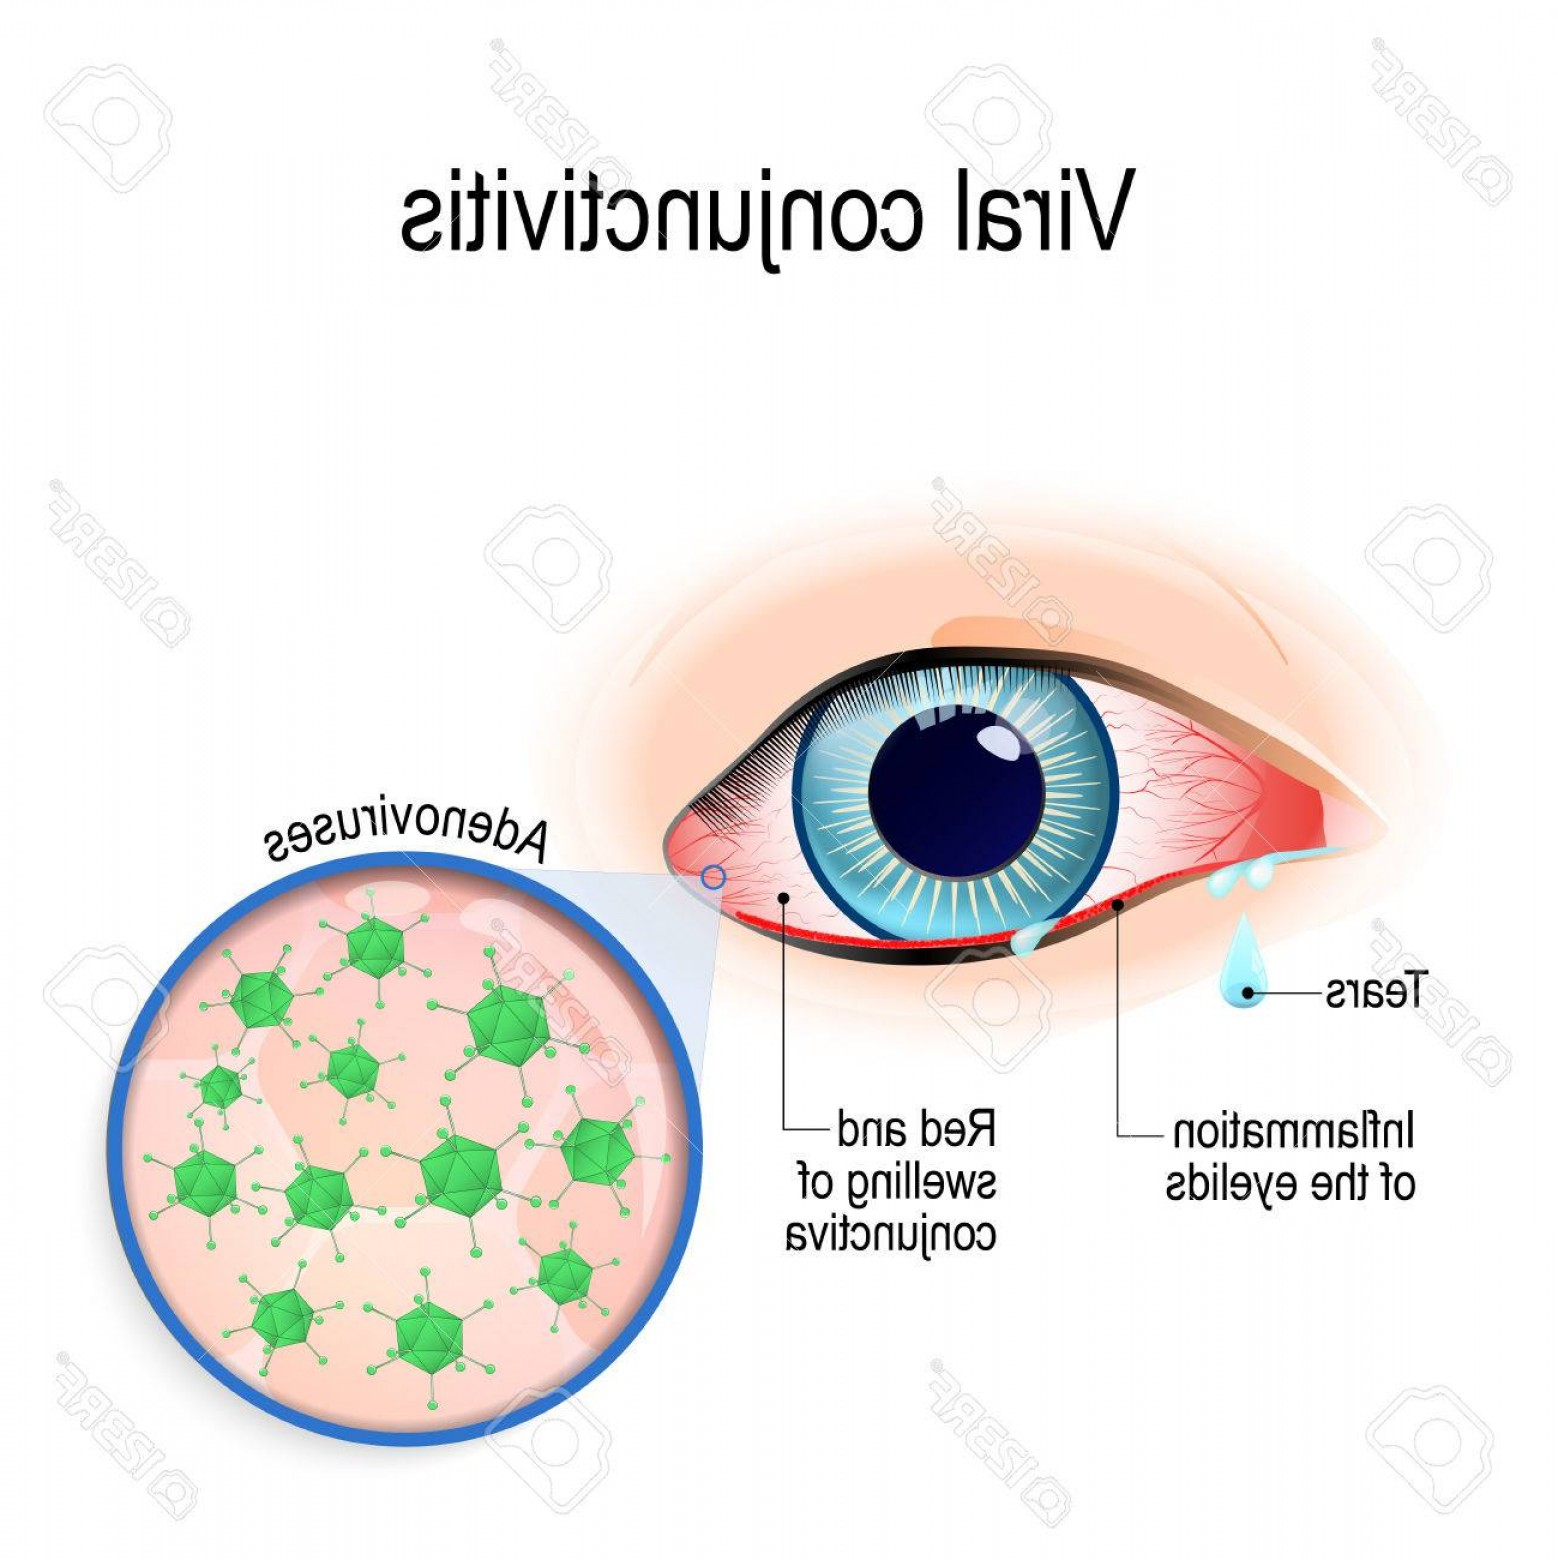 Vector Virus That Causes: Photostock Vector Viral Conjunctivitis Adenoviruses Is The Cause Of Viral Conjunctivitis